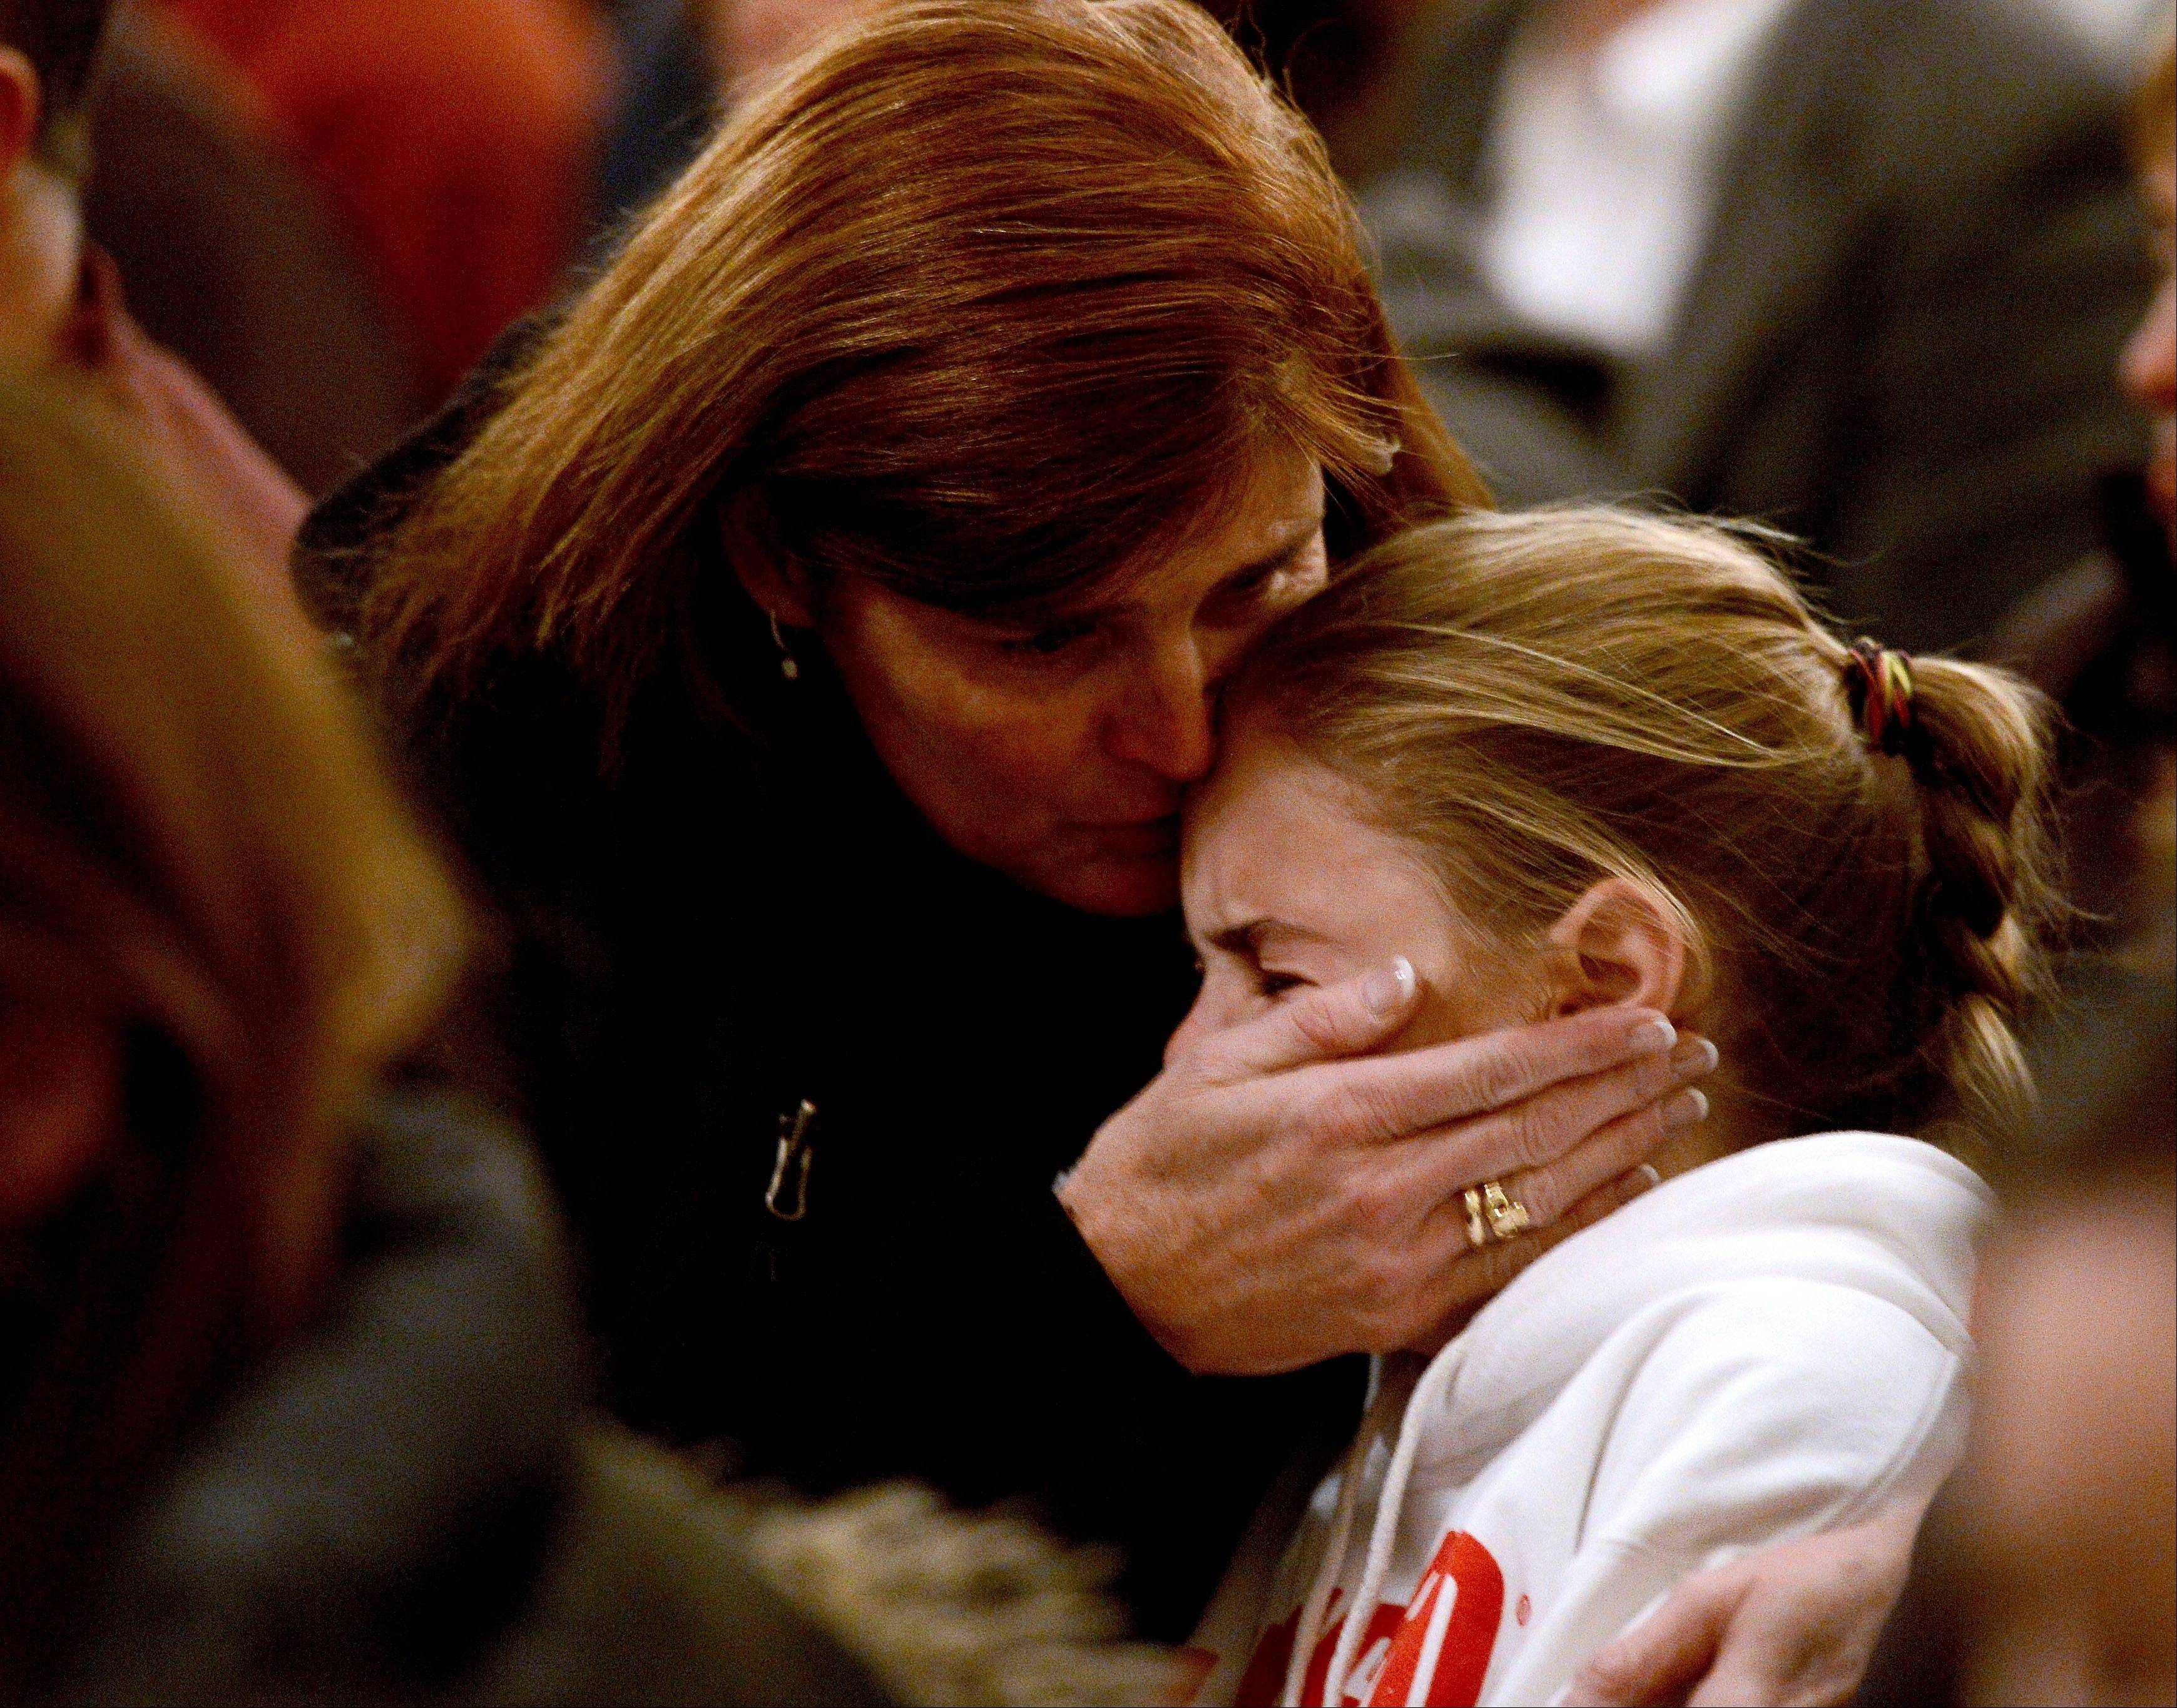 A woman comforts a young girl during a vigil service Friday for victims of the Sandy Hook Elementary shooting, at St. Rose of Lima Roman Catholic Church in Newtown, Conn.